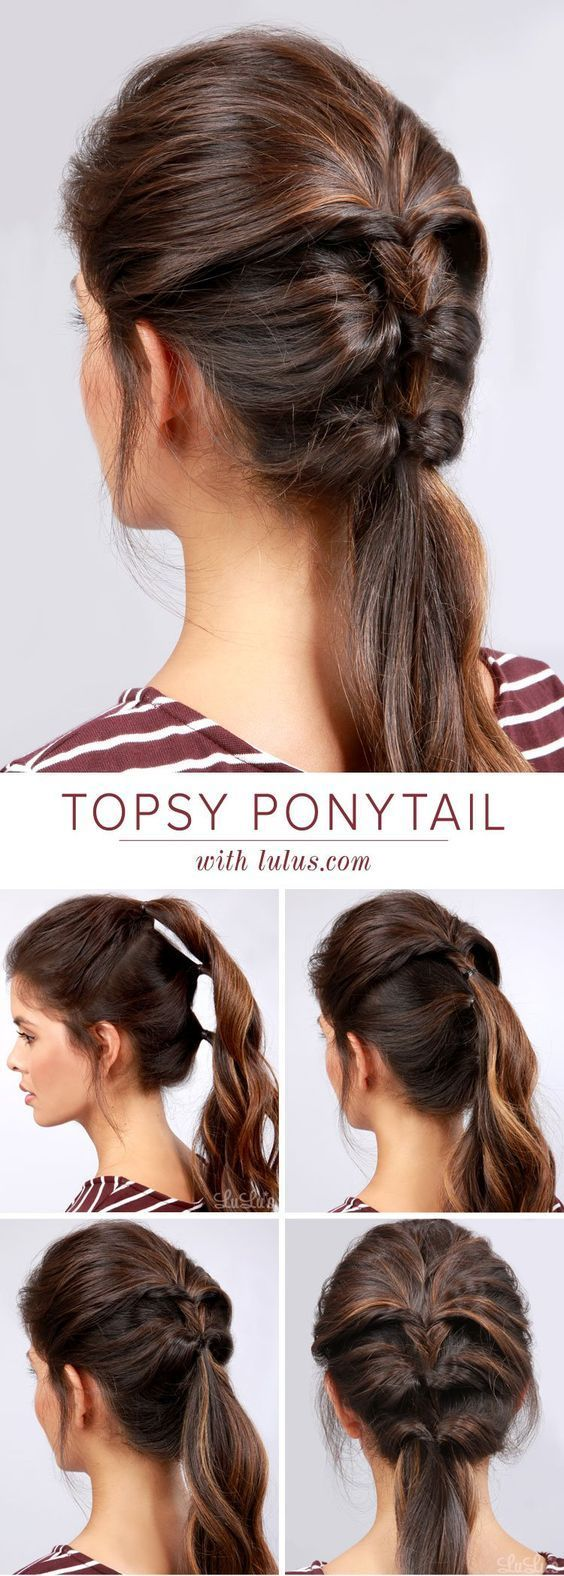 15 stylish step by step tutorials hairstyle you absolutely have to look at  15 stylish step by step tutorials hairstyle you absolutely have to look at